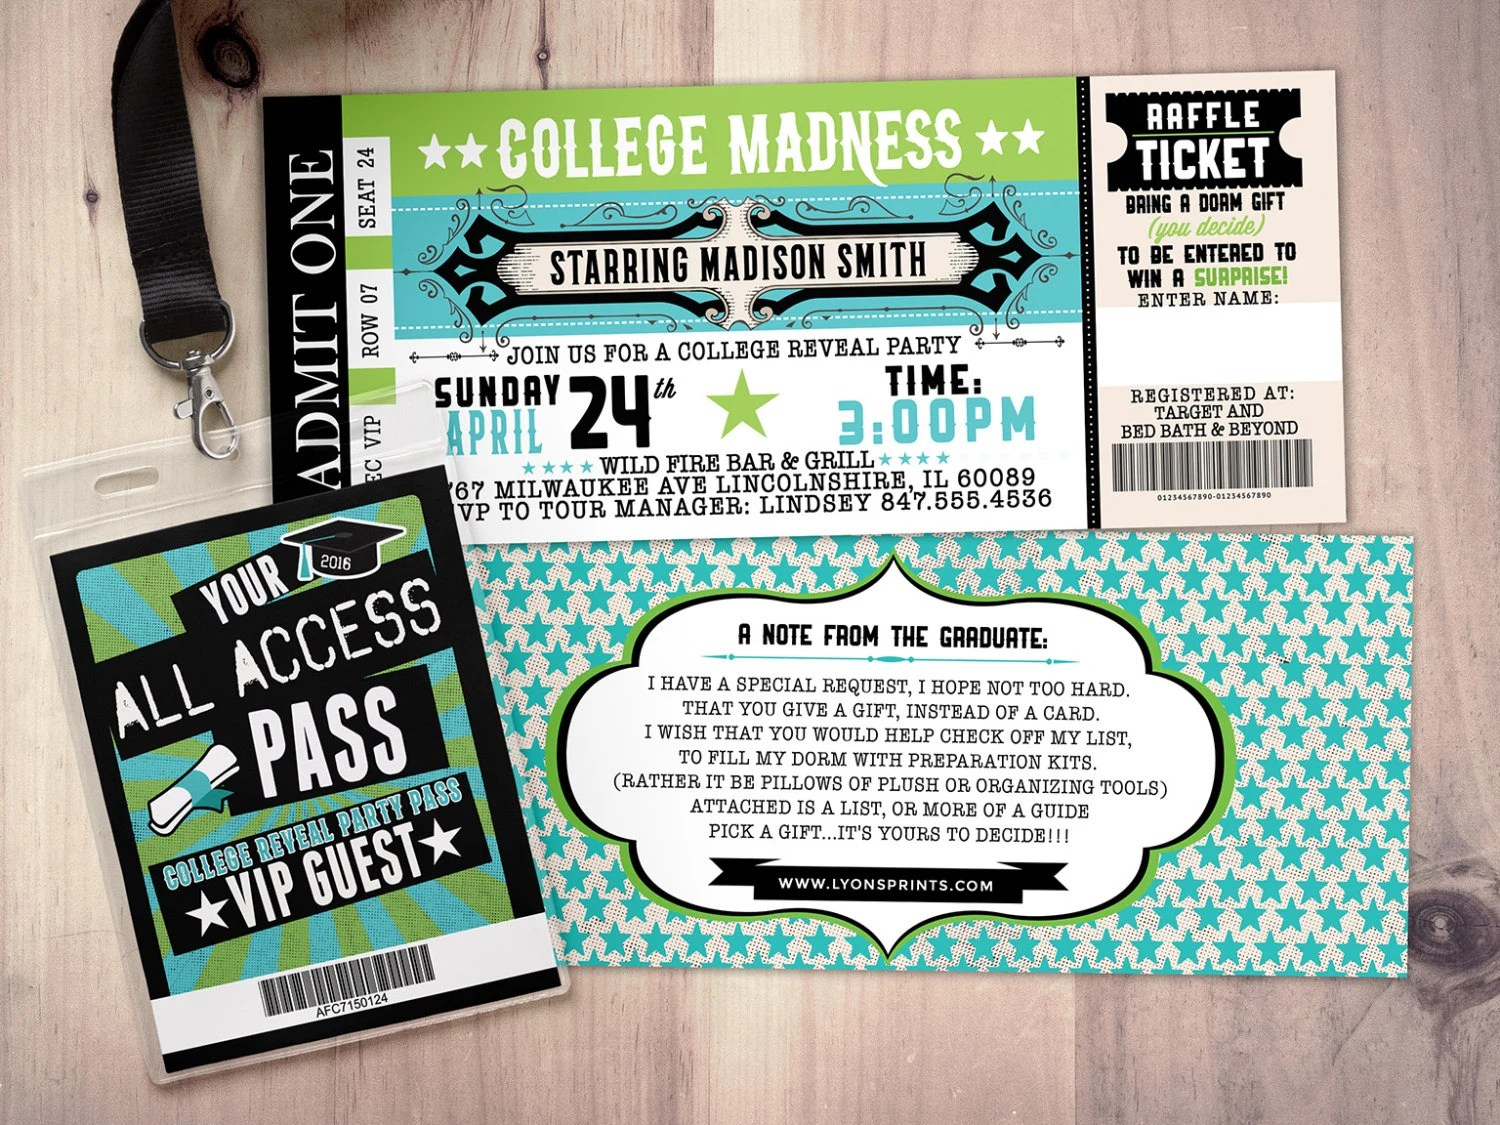 College reveal party Concert ticket graduation party Etsy